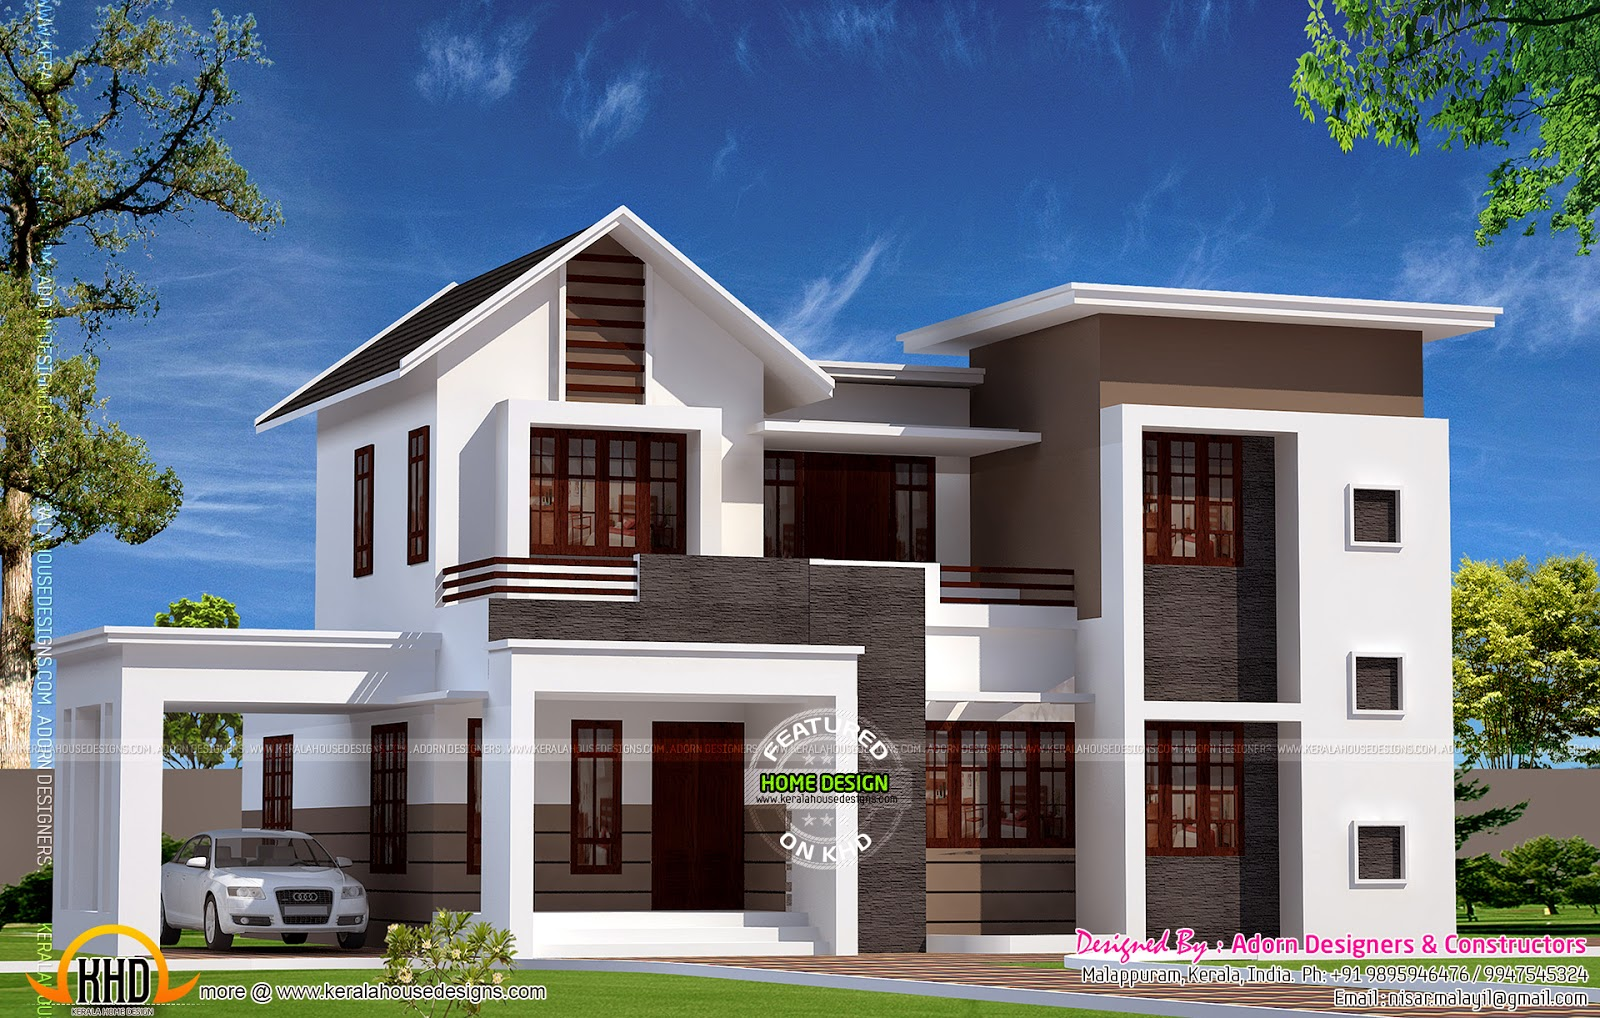 September 2014 Kerala Home Design And Floor Plans: new model contemporary house